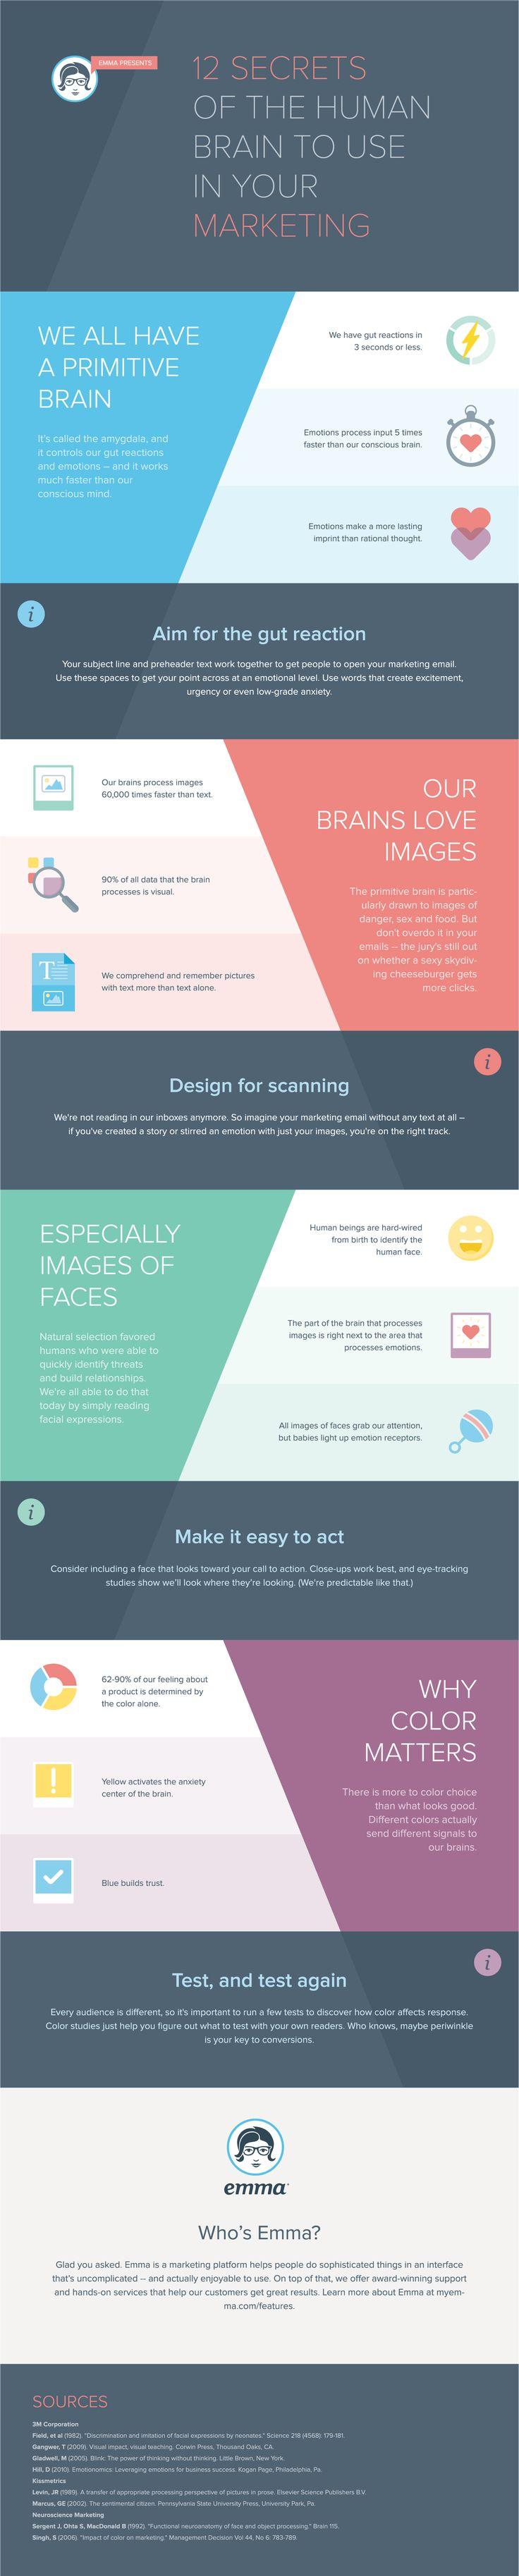 12 Secrets Of The Human Brain To Use In Your Marketing #DigitalMarketing #Marketing #Infographic